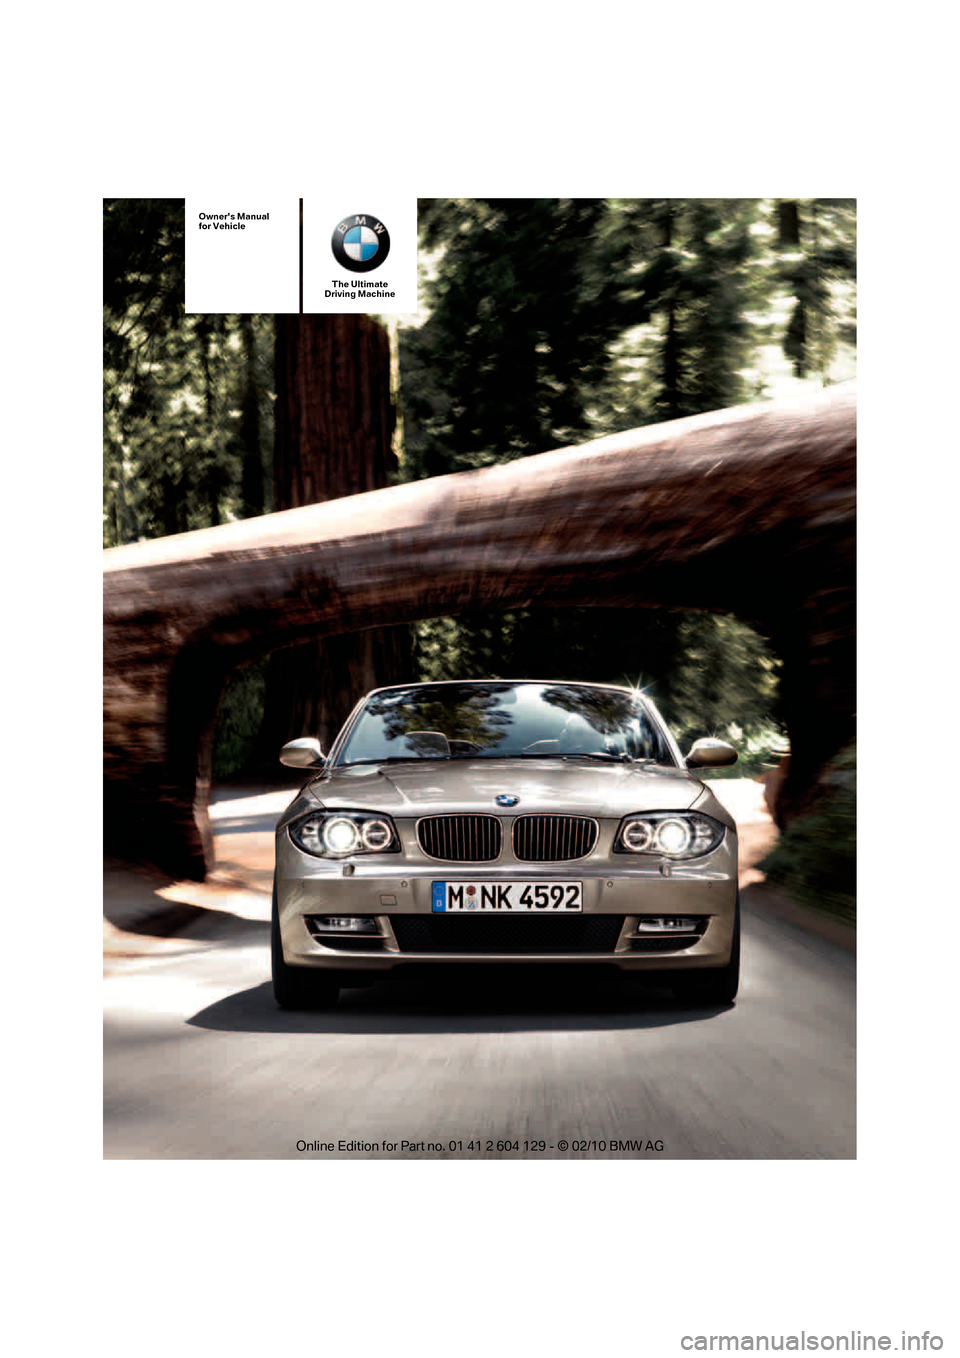 BMW 128I COUPE 2011 E82 Owners Manual The Ultimate Driving Machine Owners Manual for Vehicle